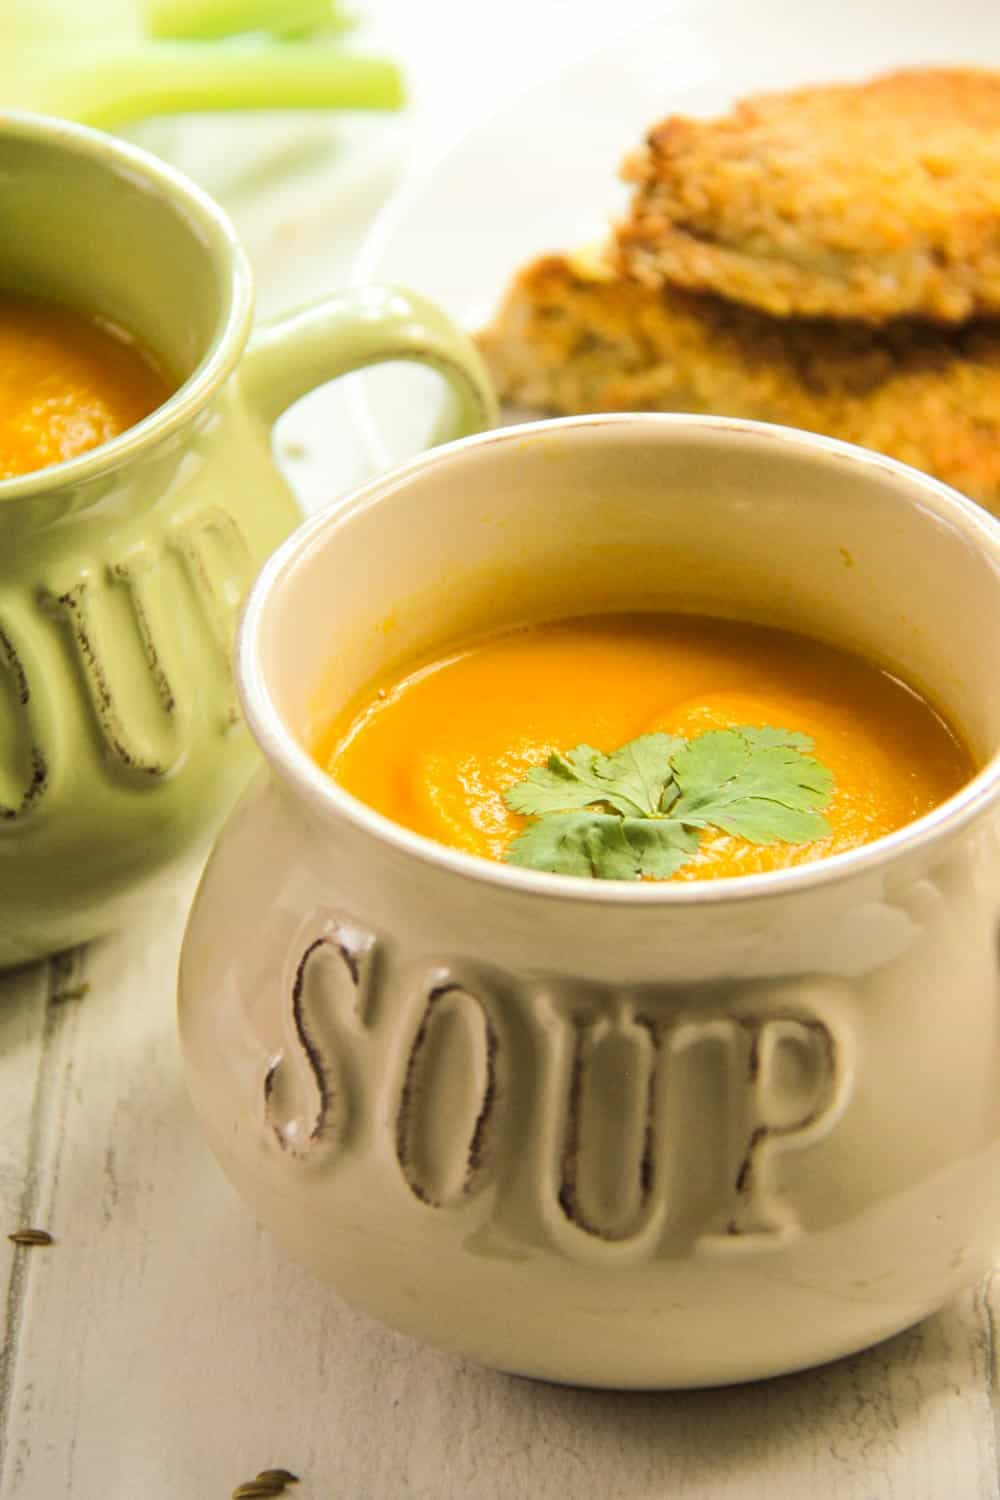 Carrot and fennel soup